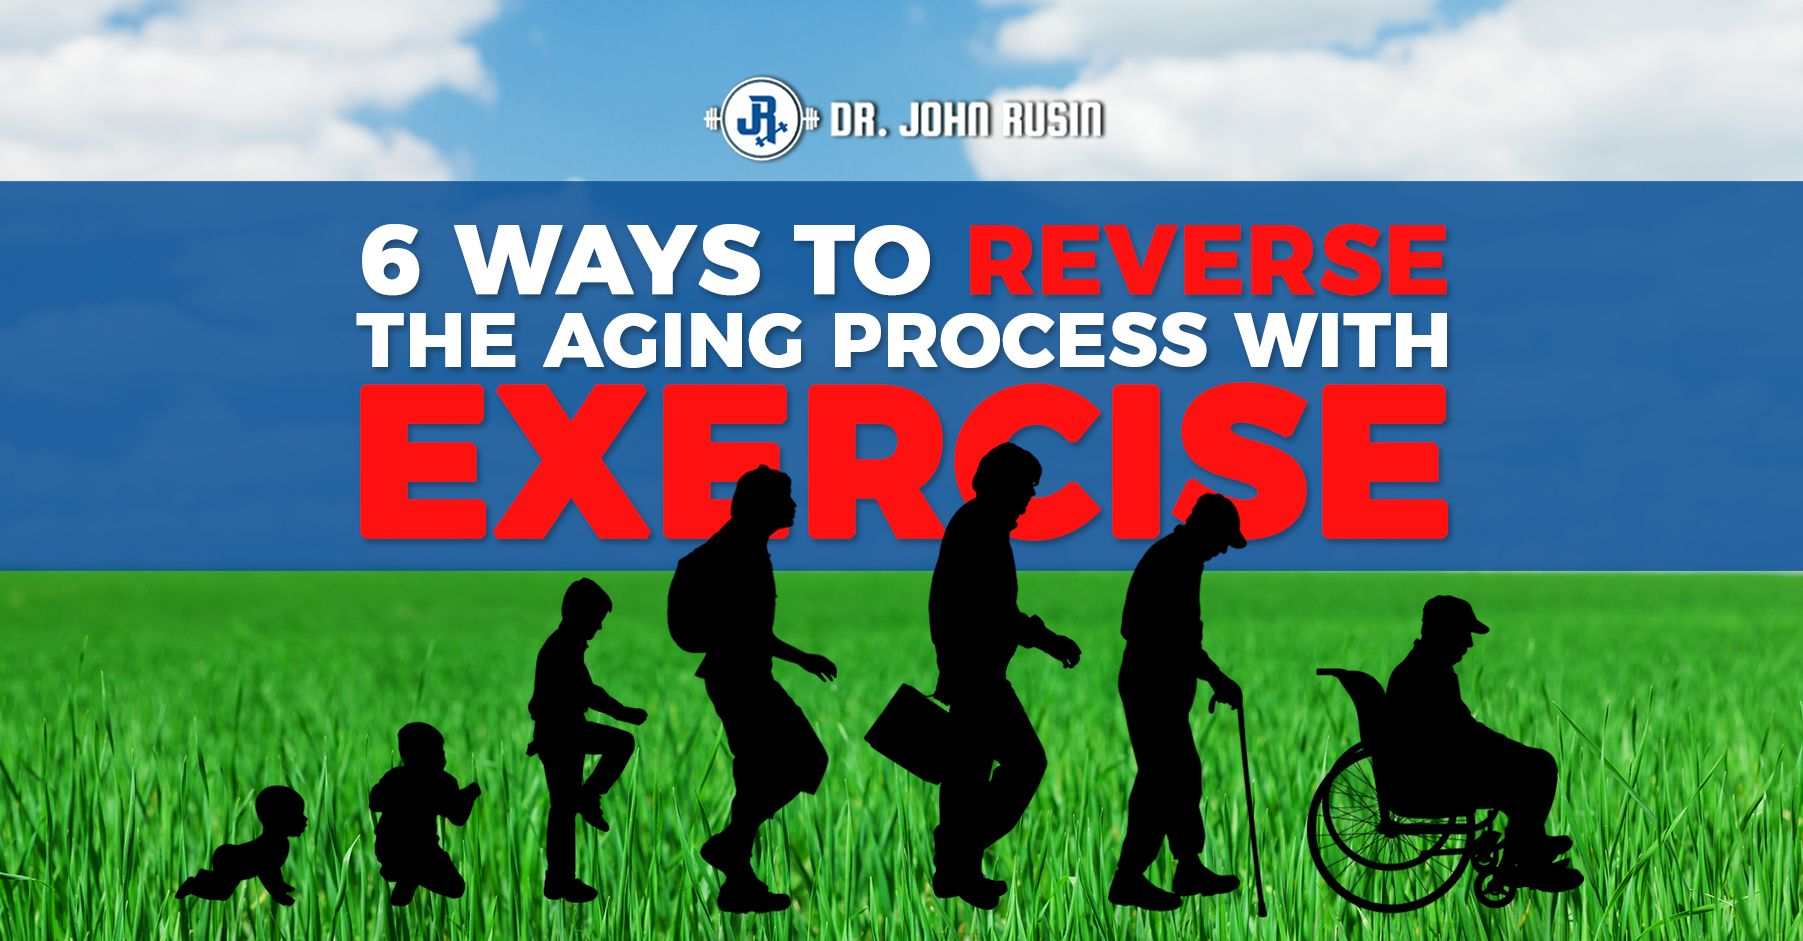 6 Ways To Reverse The Aging Process With Exercise